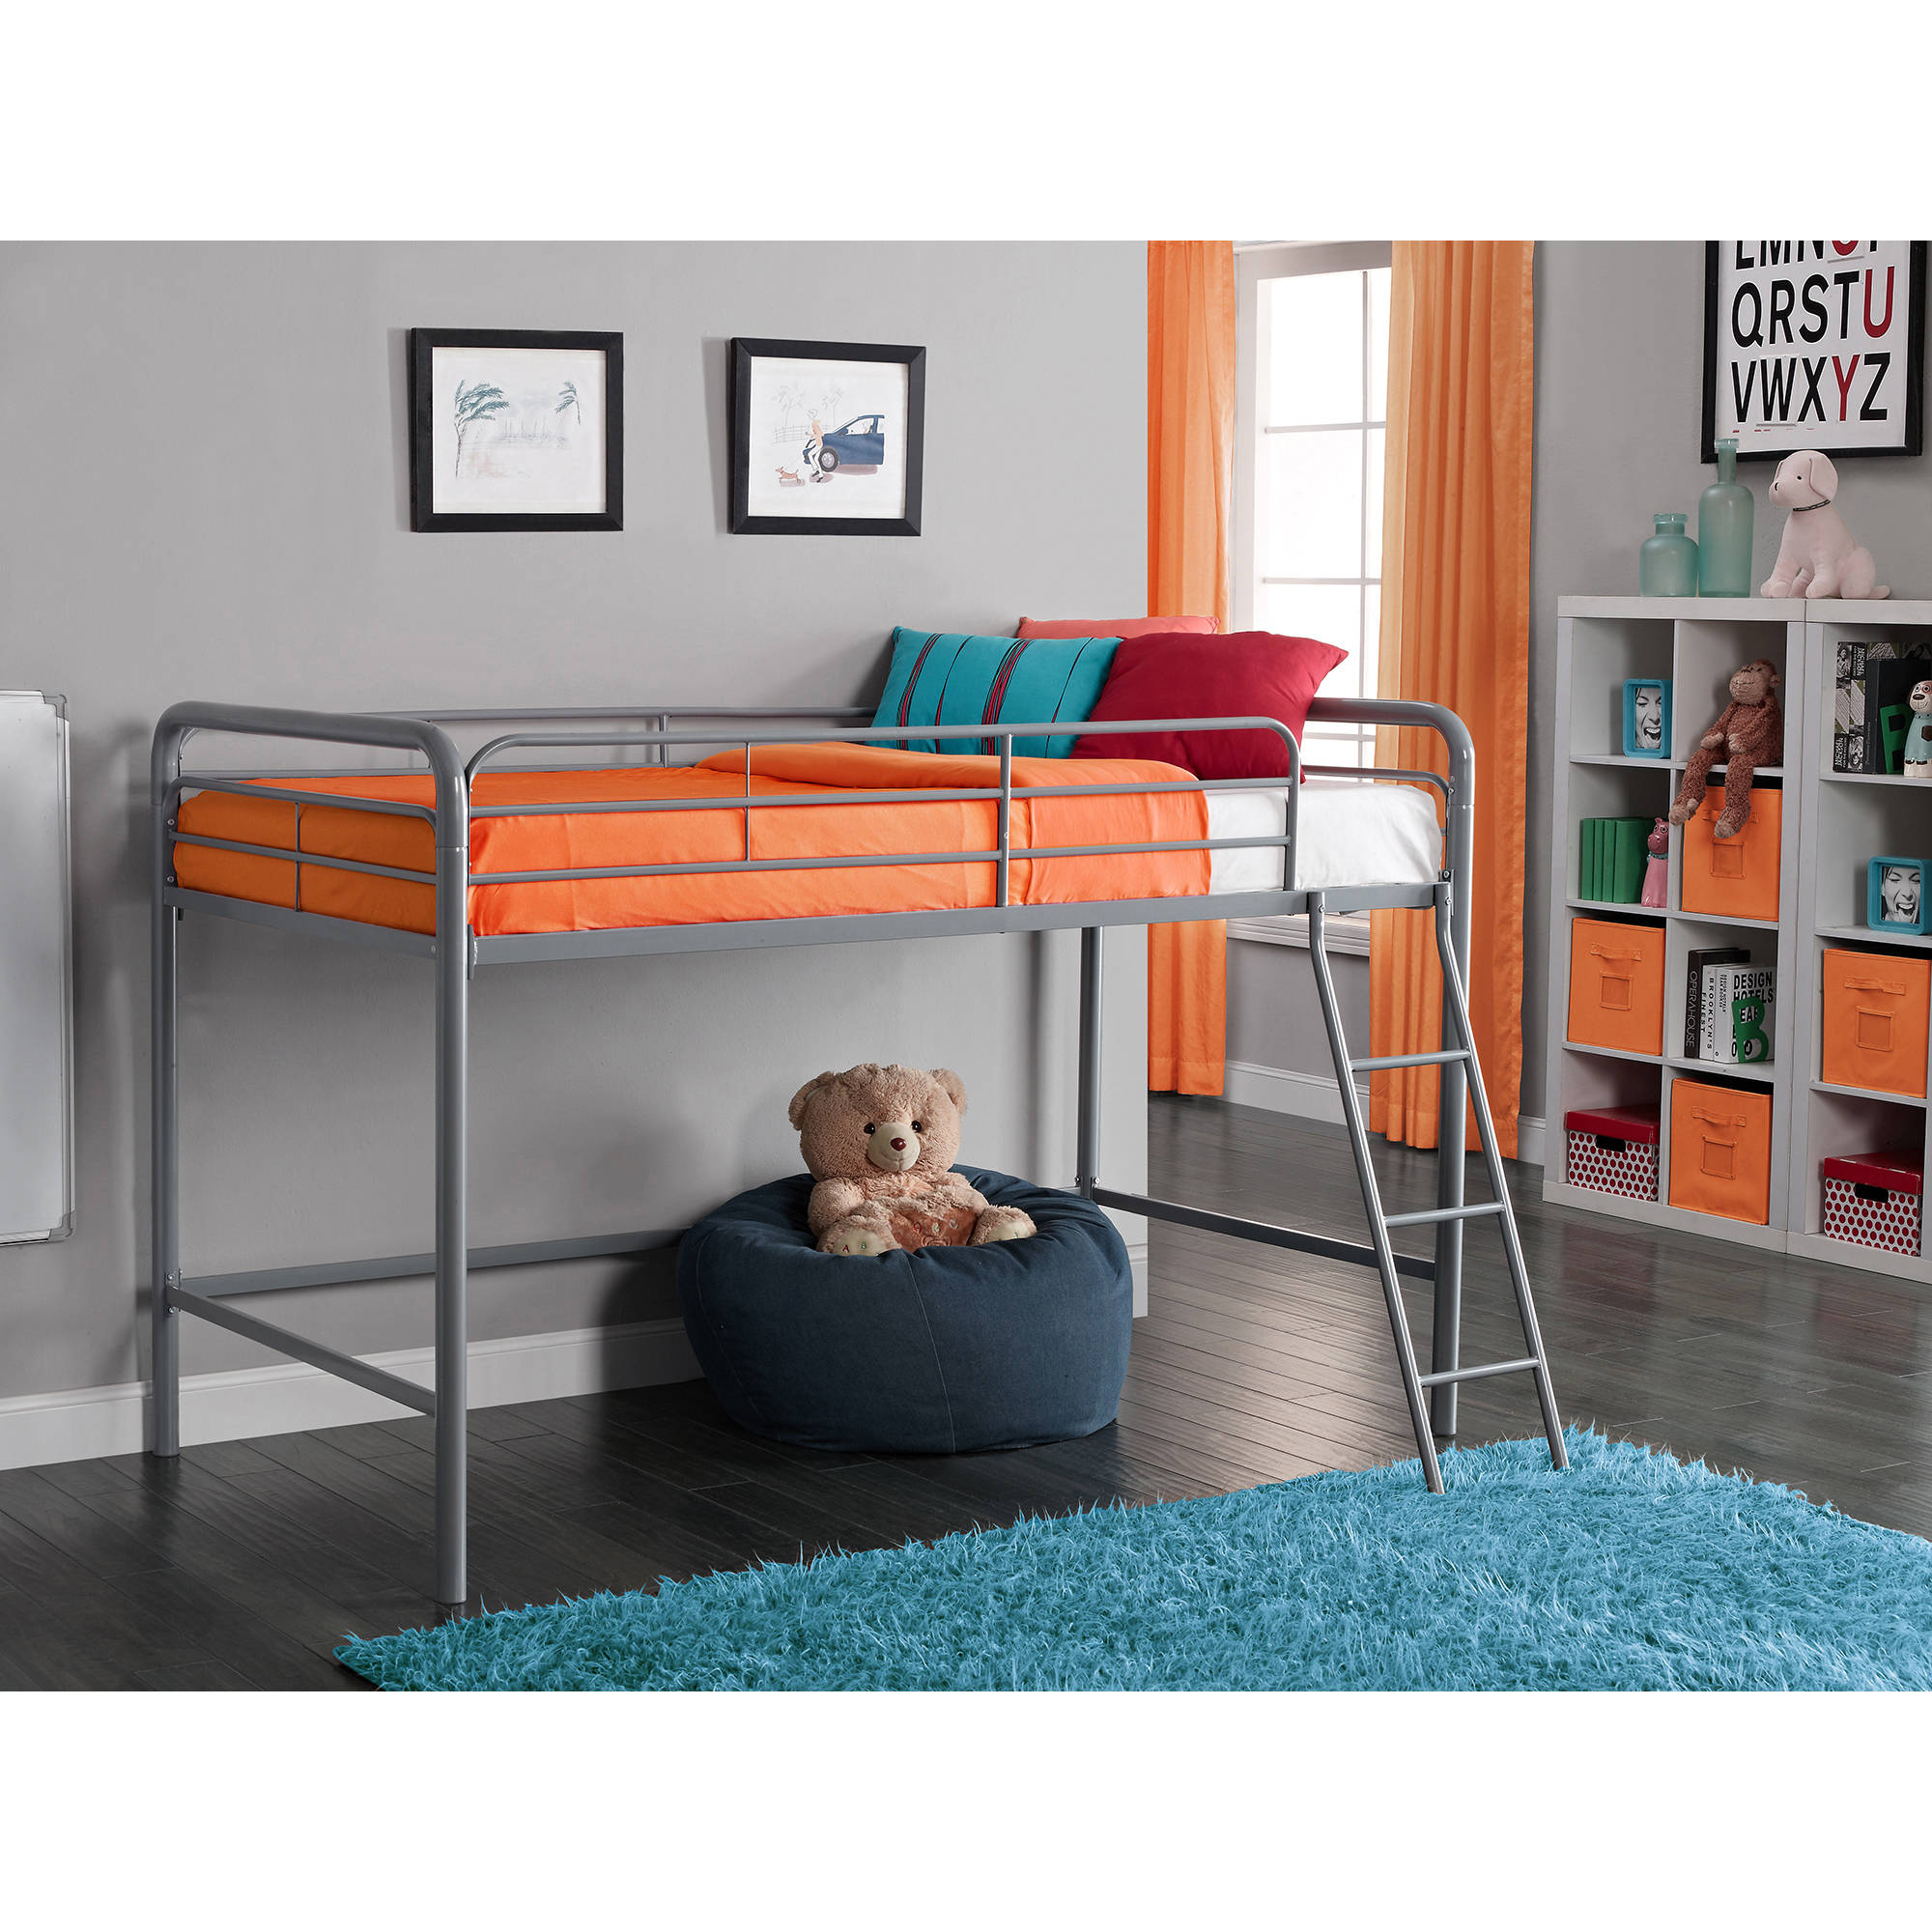 High Quality DHP Junior Metal Loft Bed, Twin Size, Multiple Colors